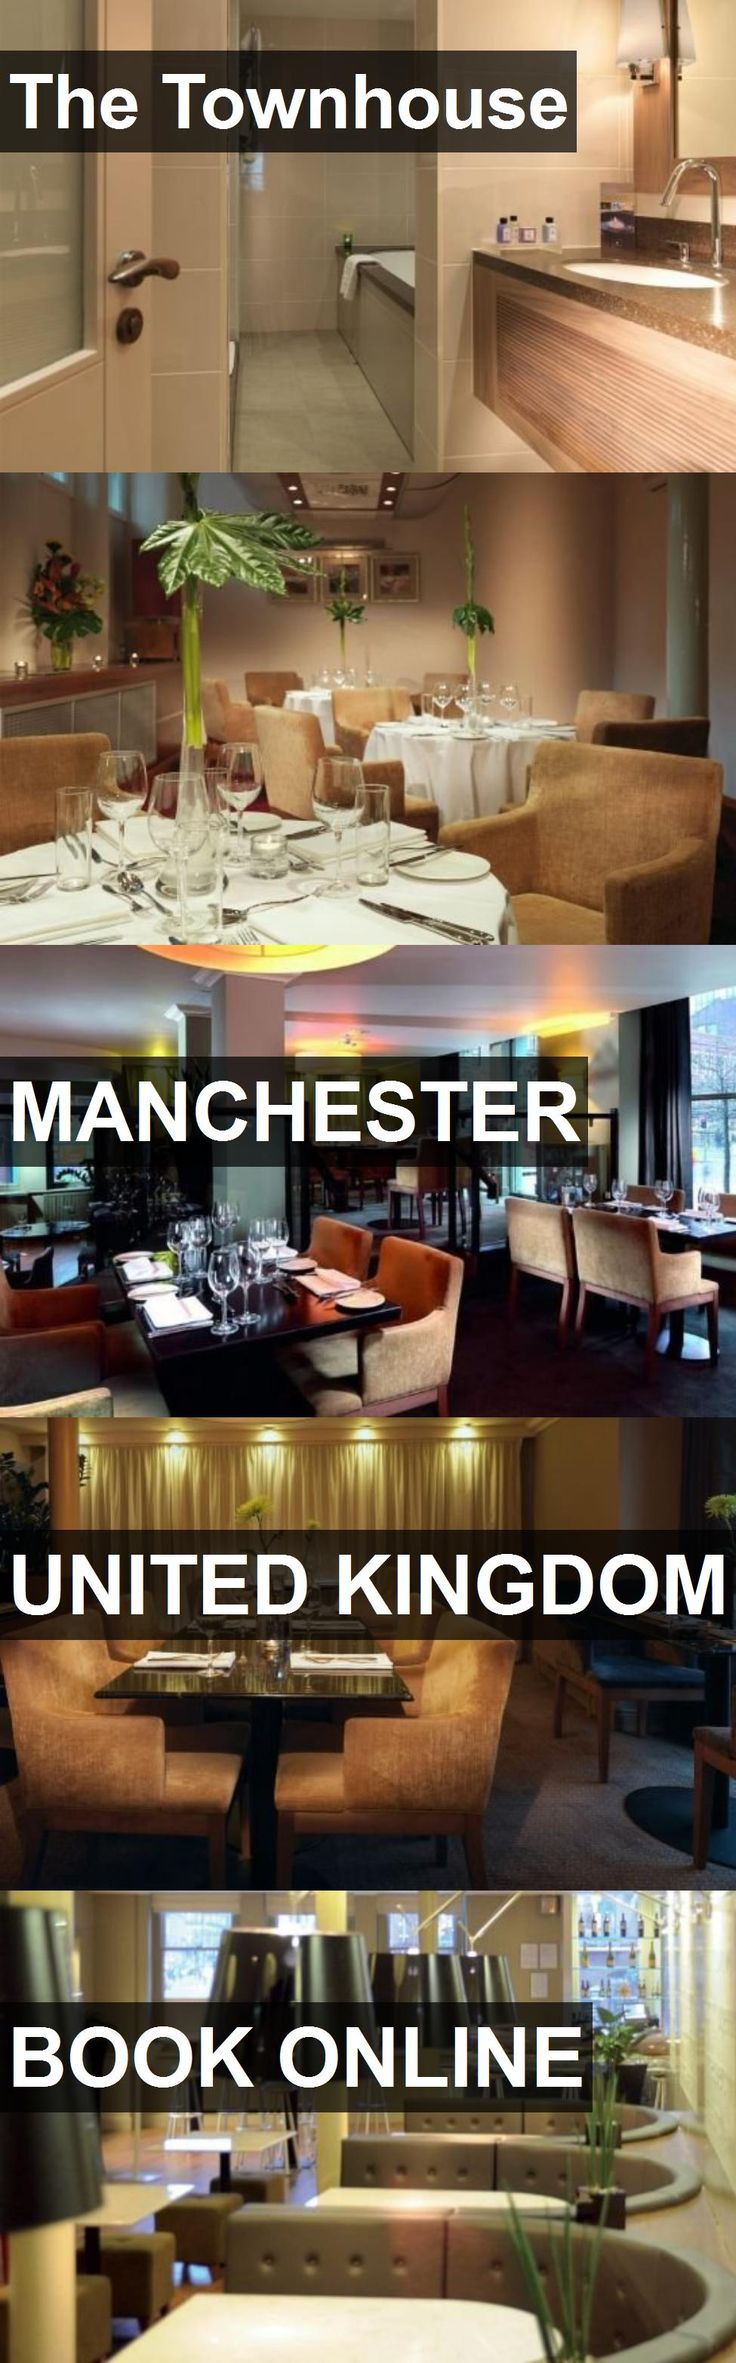 Hotel The Townhouse in Manchester, United Kingdom. For more information, photos, reviews and best prices please follow the link. #UnitedKingdom #Manchester #travel #vacation #hotel